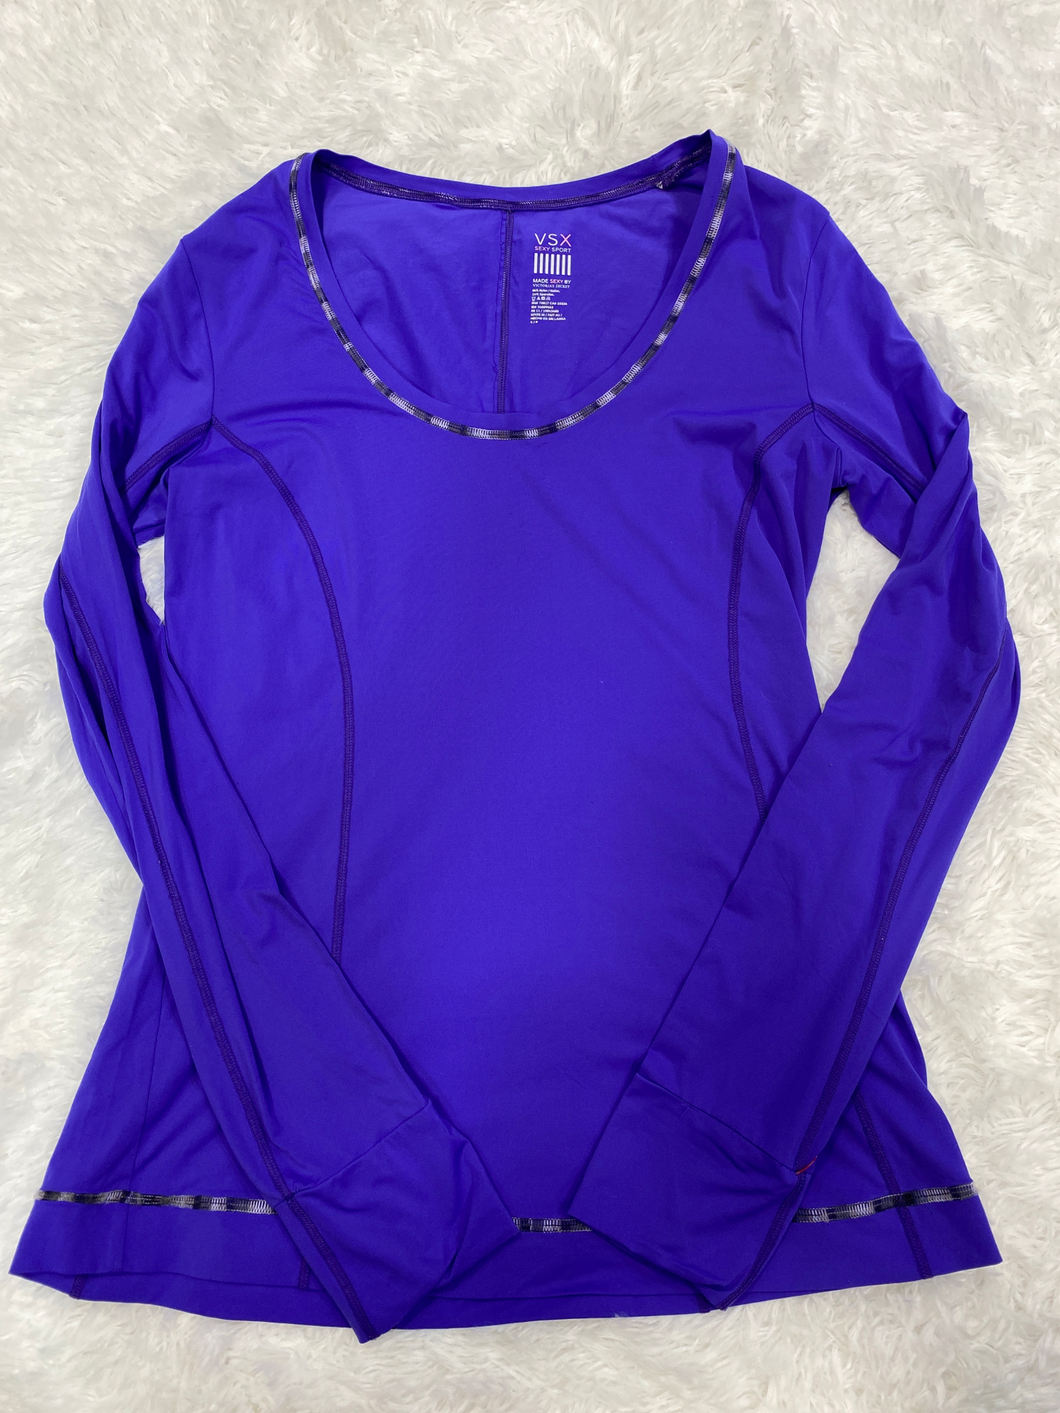 Victoria's Secret Athletic Top Size Small